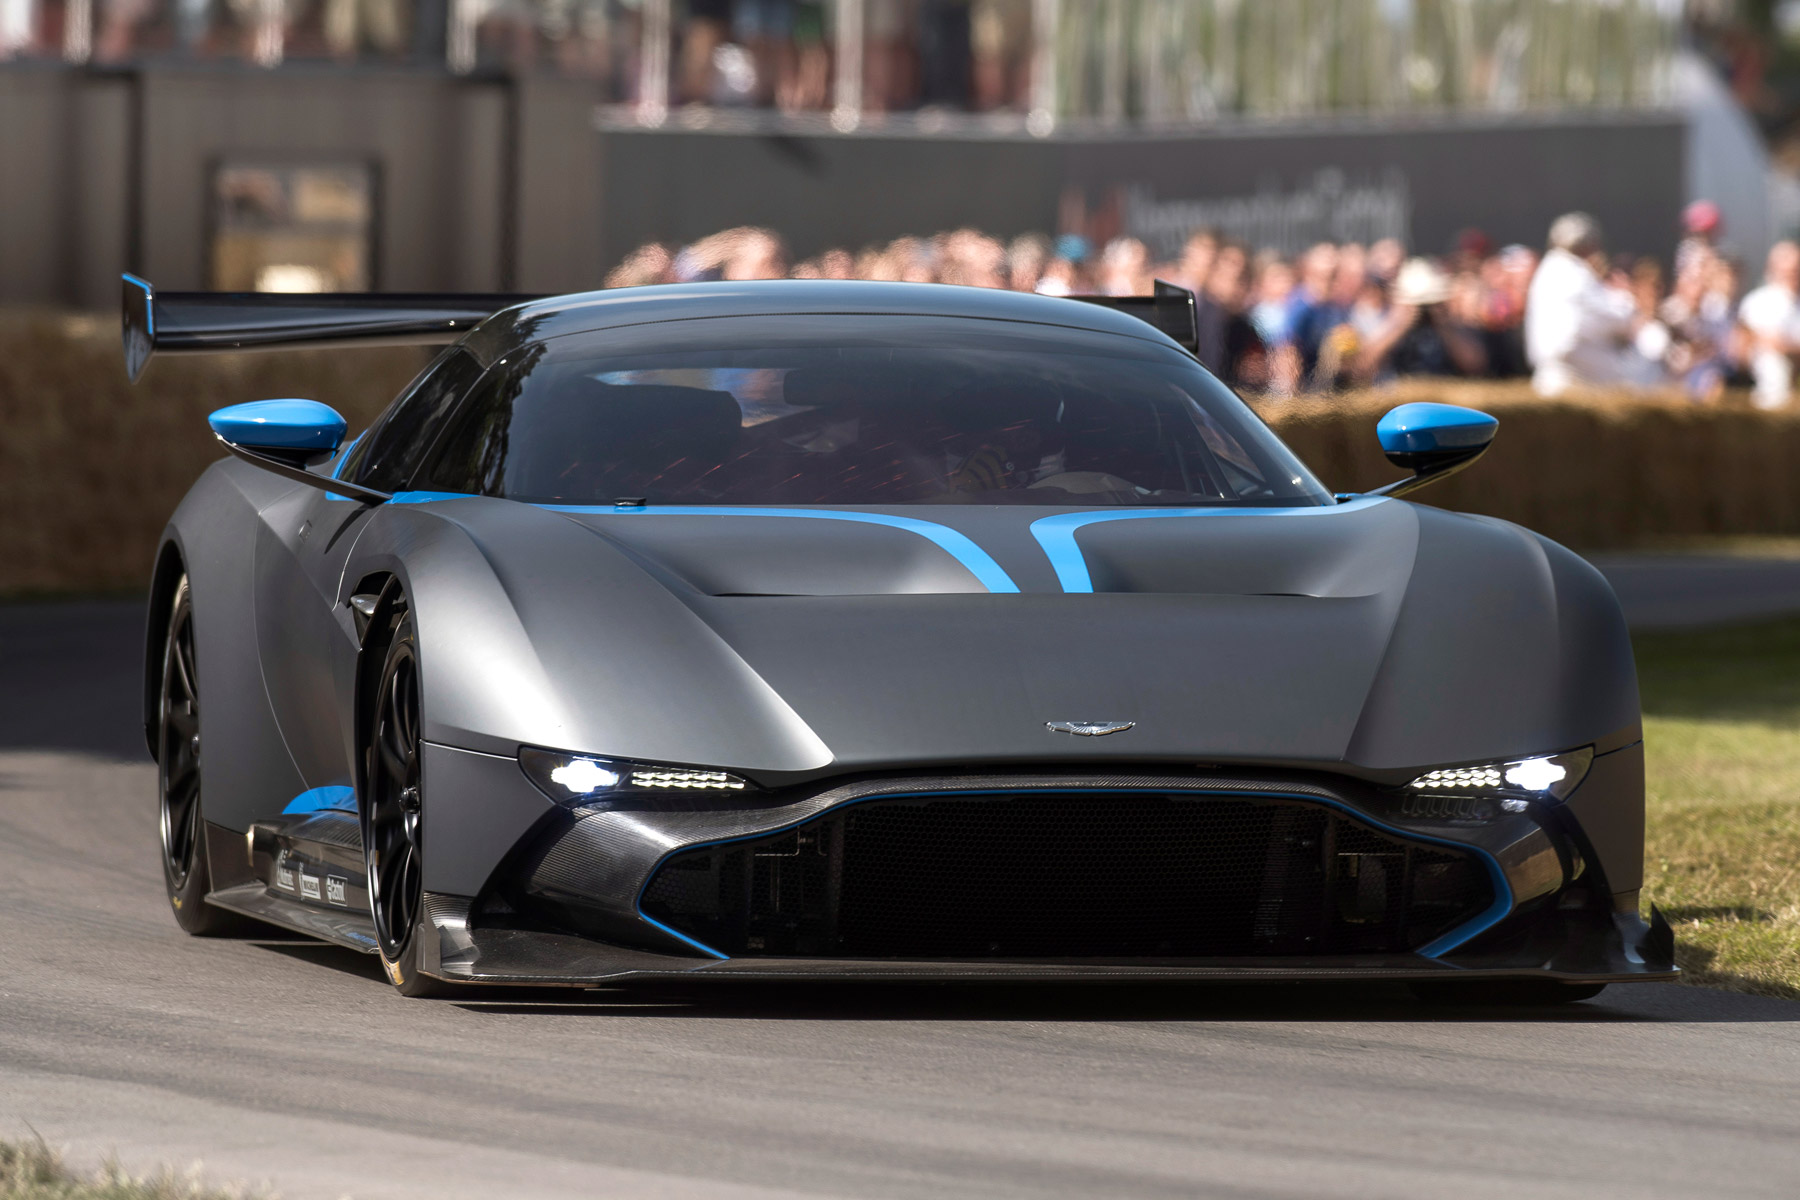 Aston Martin Vulcan To Make UK Road Debut... On Coventry